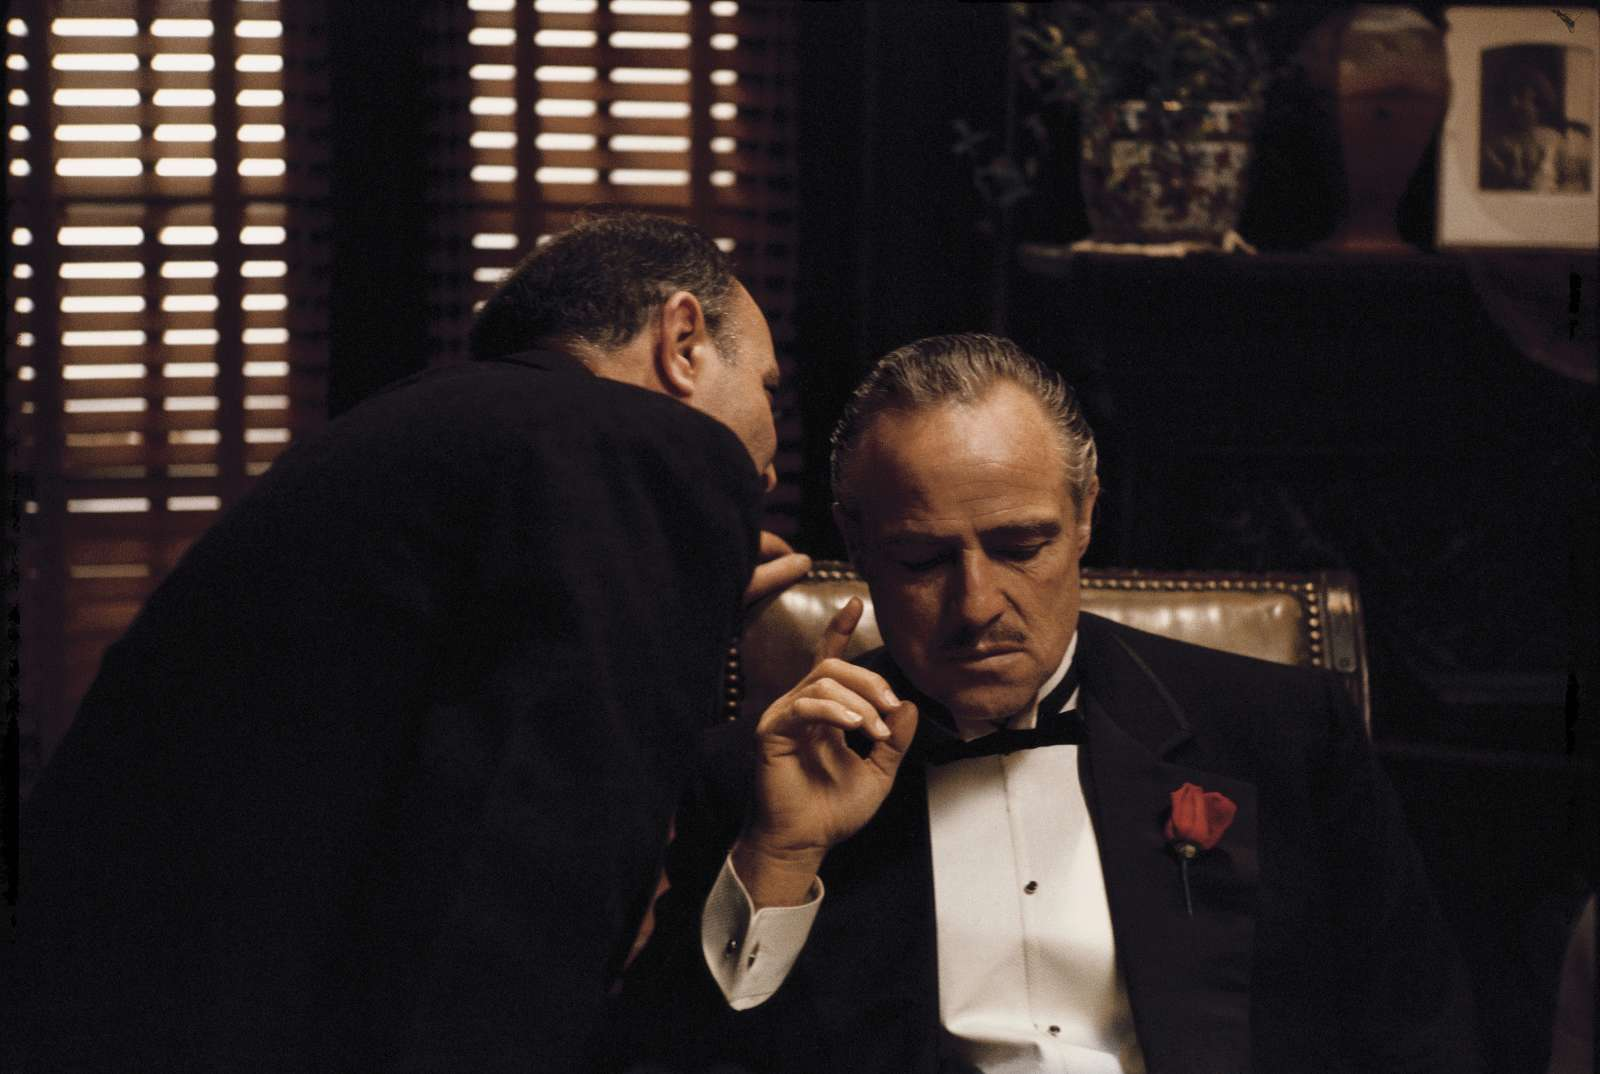 Steve Schapiro The Godfather